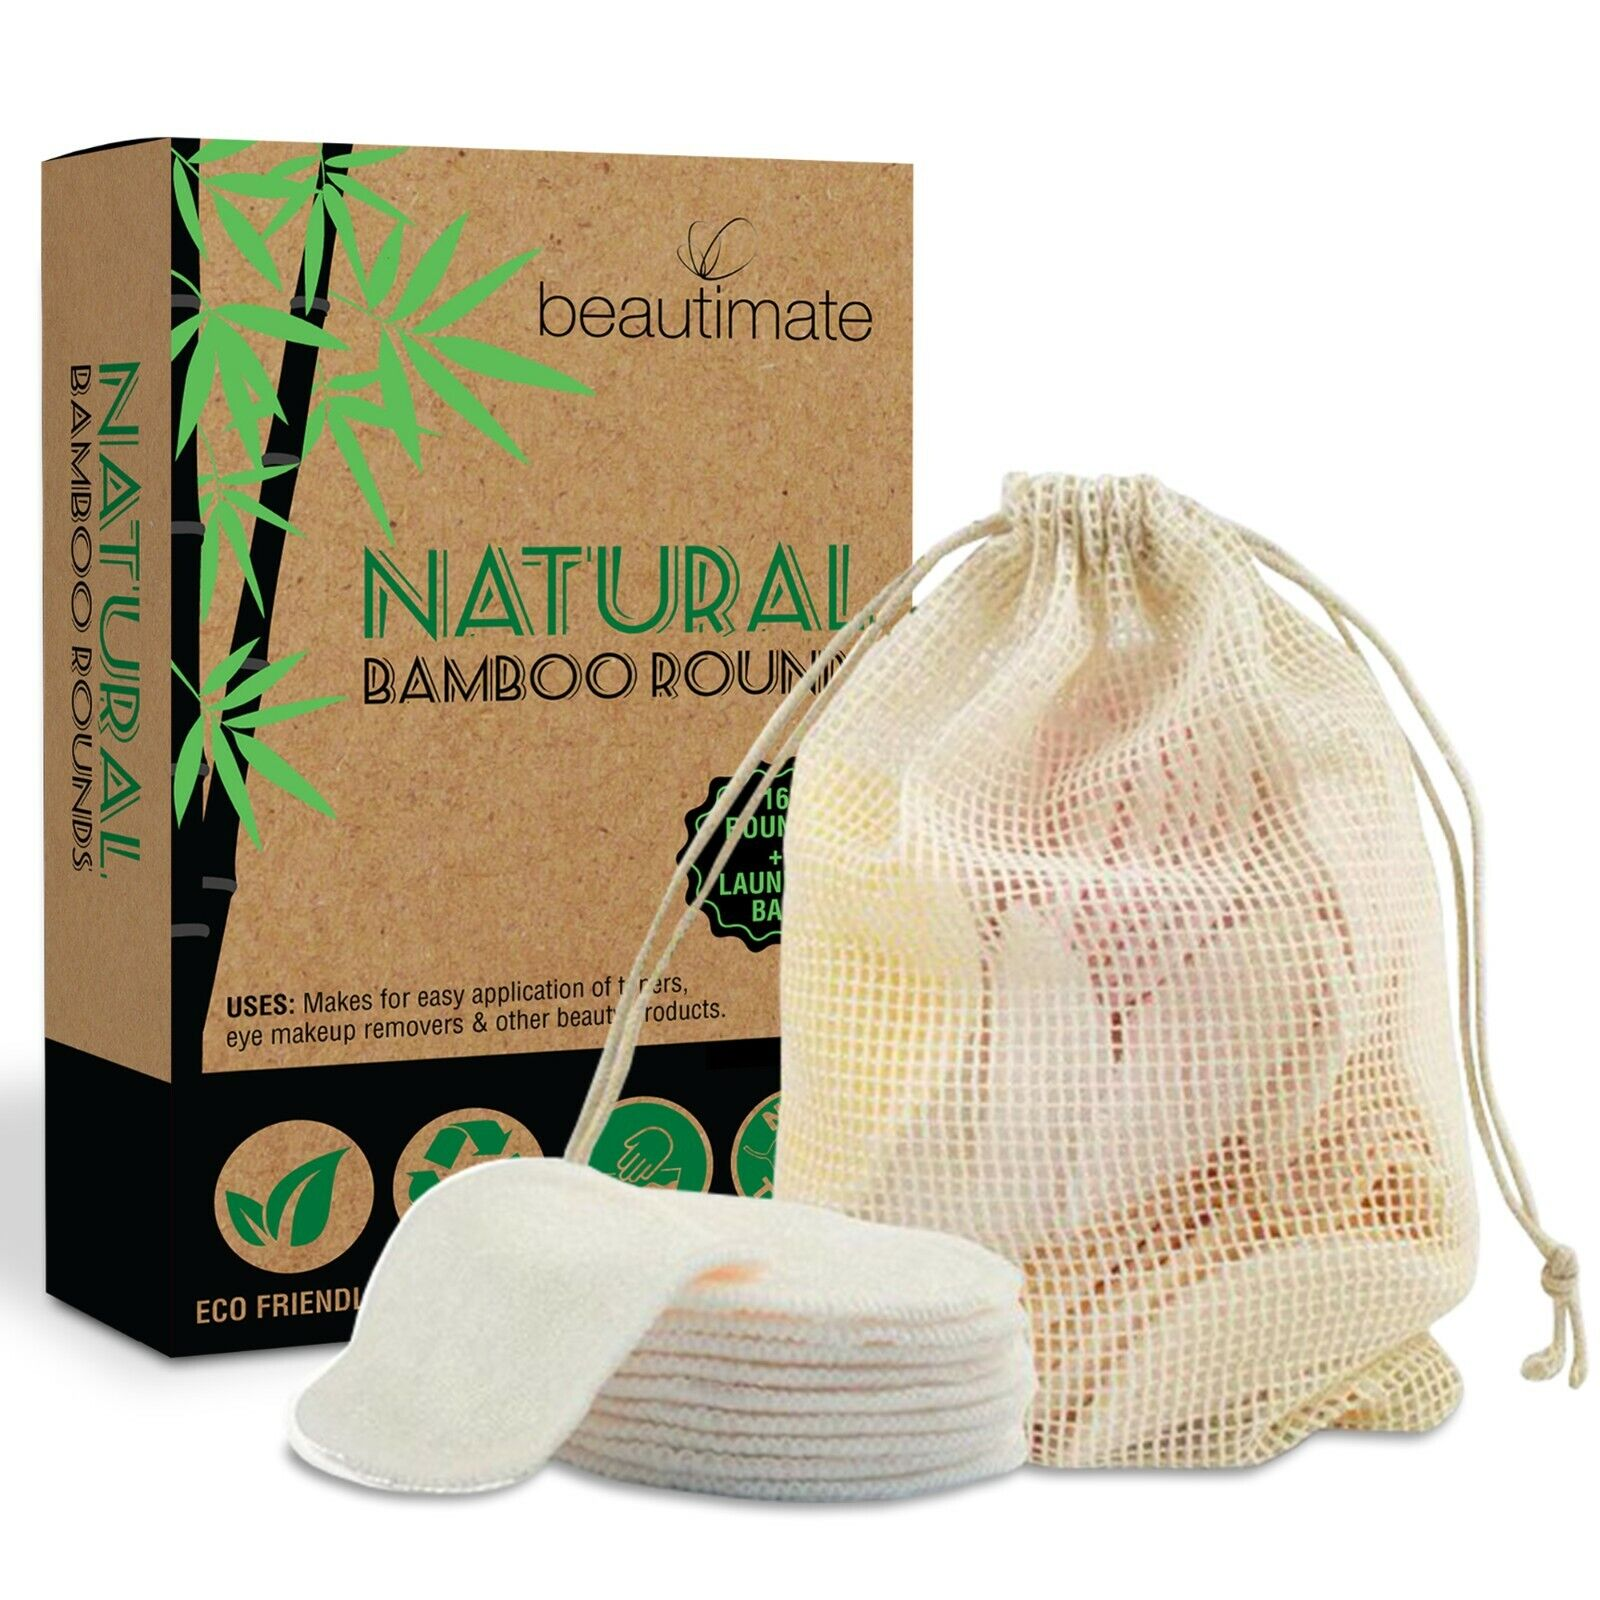 Bamboo Cotton Reusable Makeup Remover Pads Rounds 16 Pack Wi